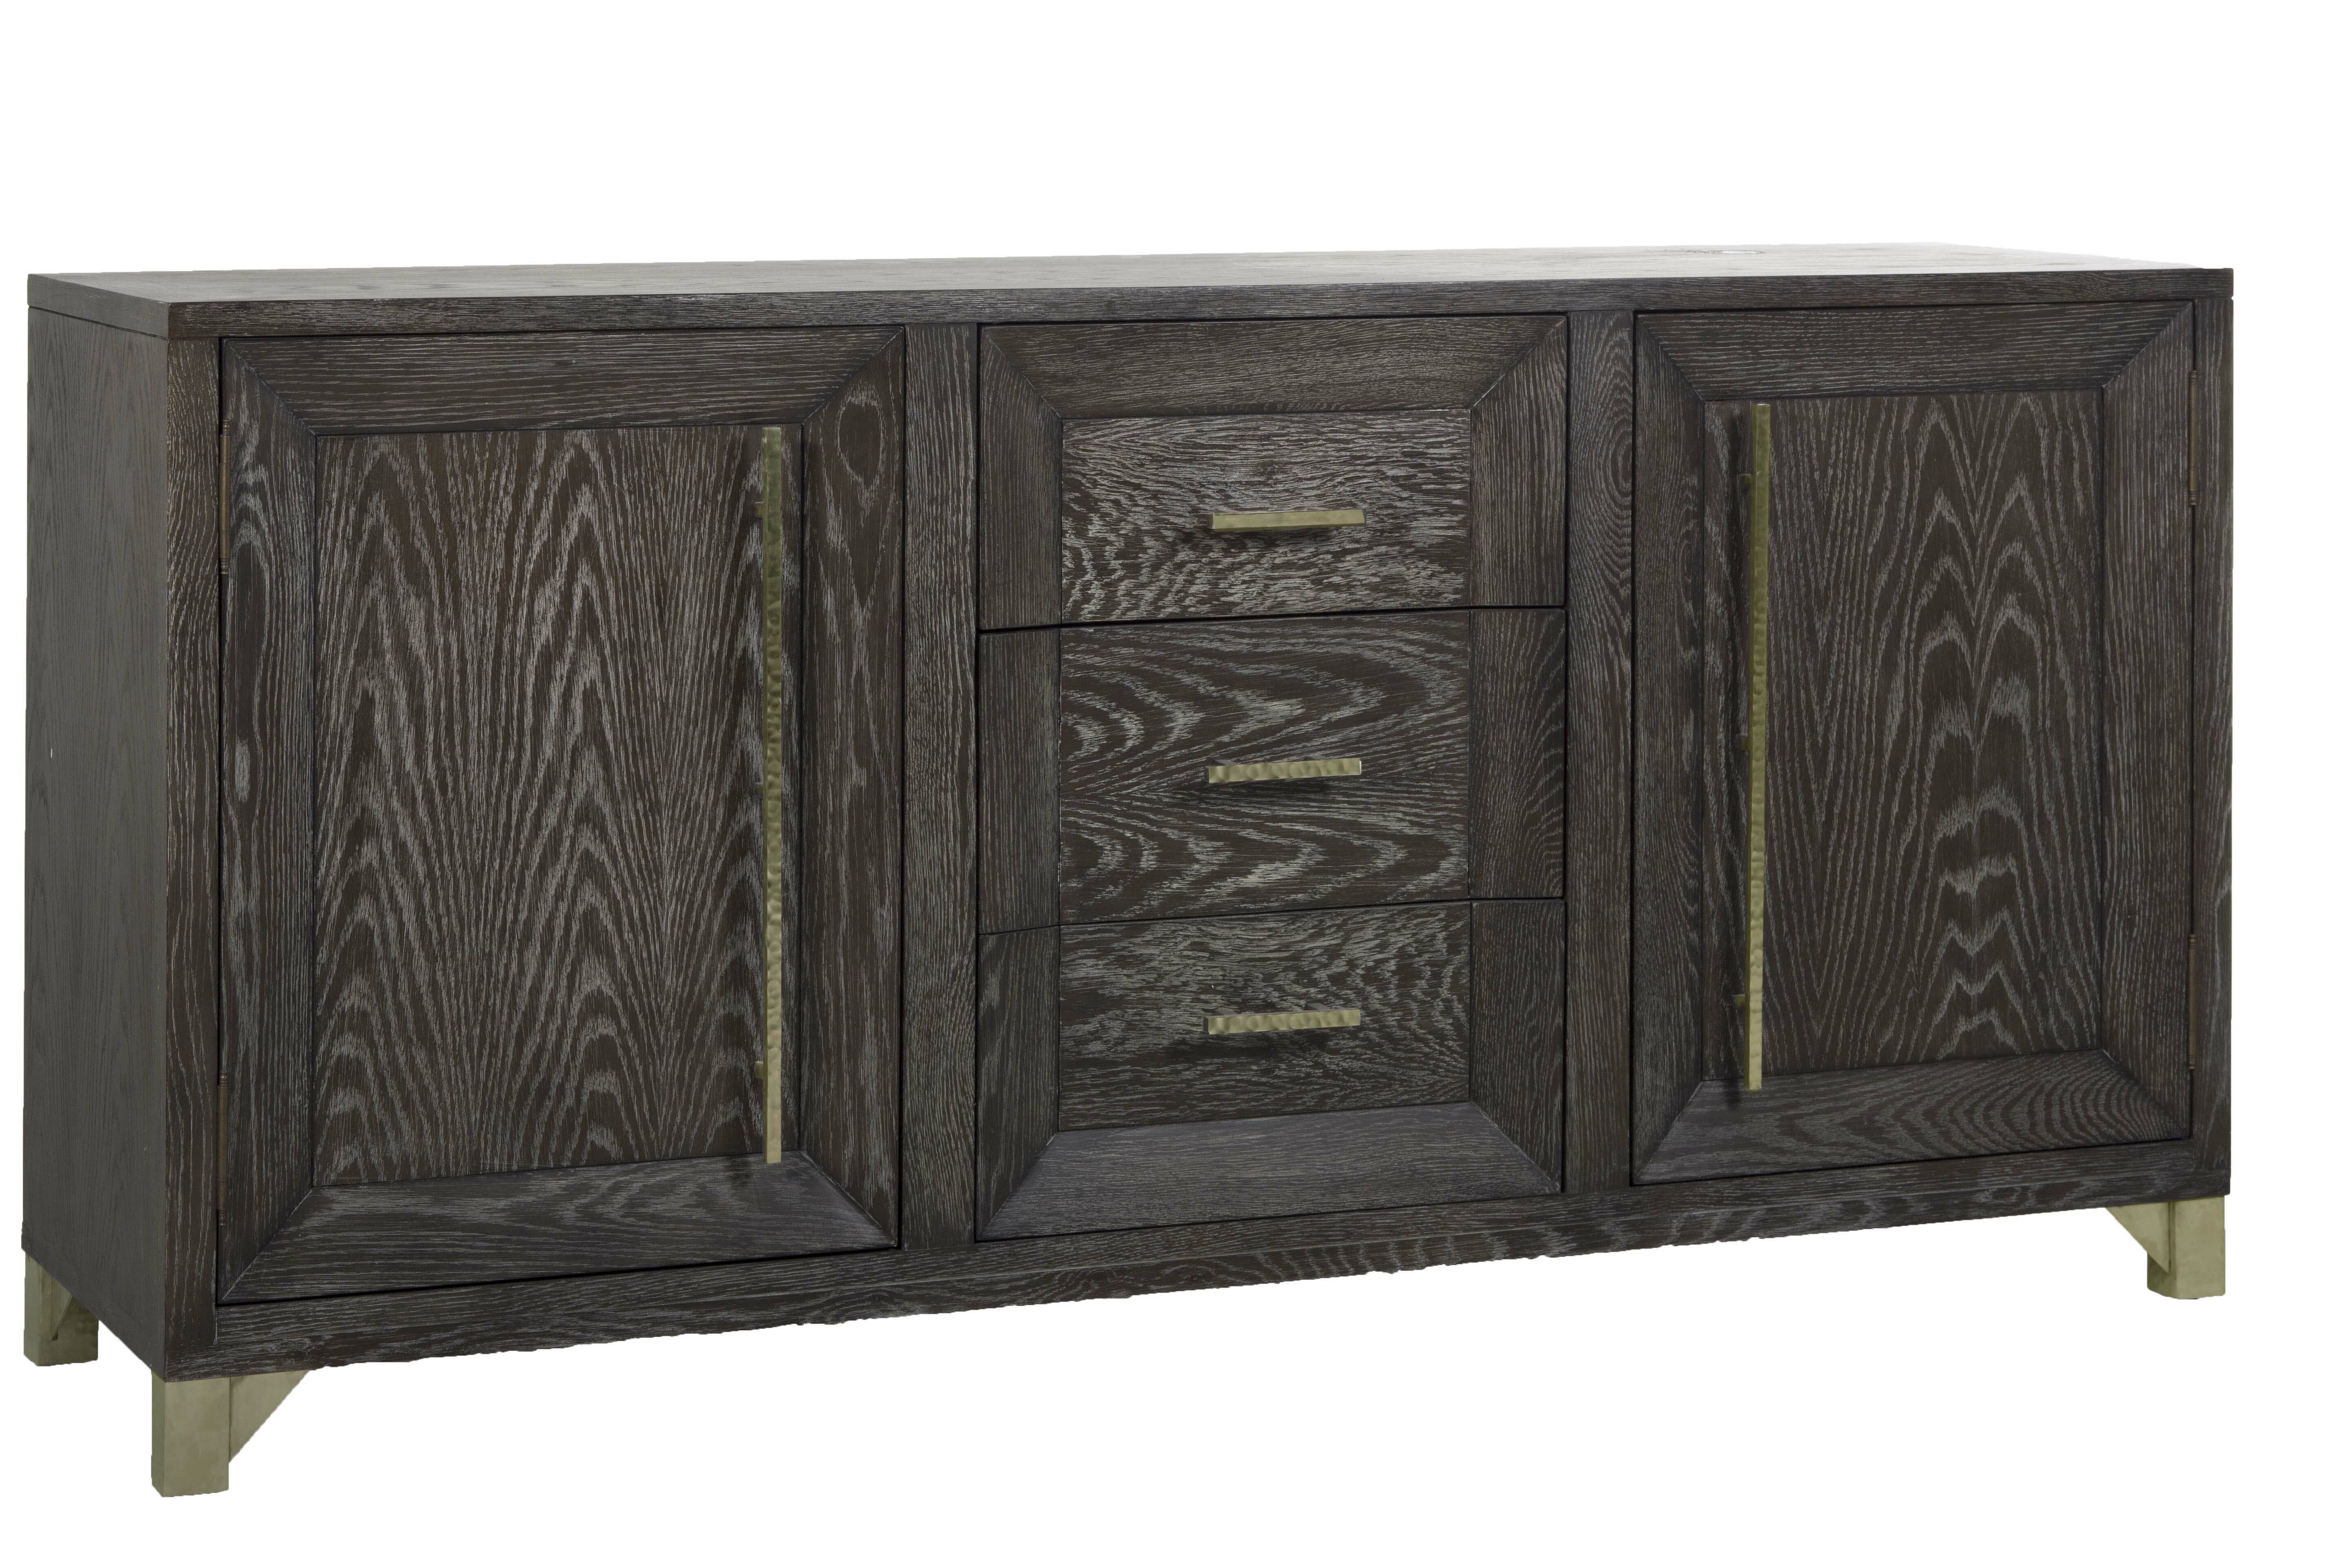 Gabby harrison 3 drawer accent cabinet wayfair